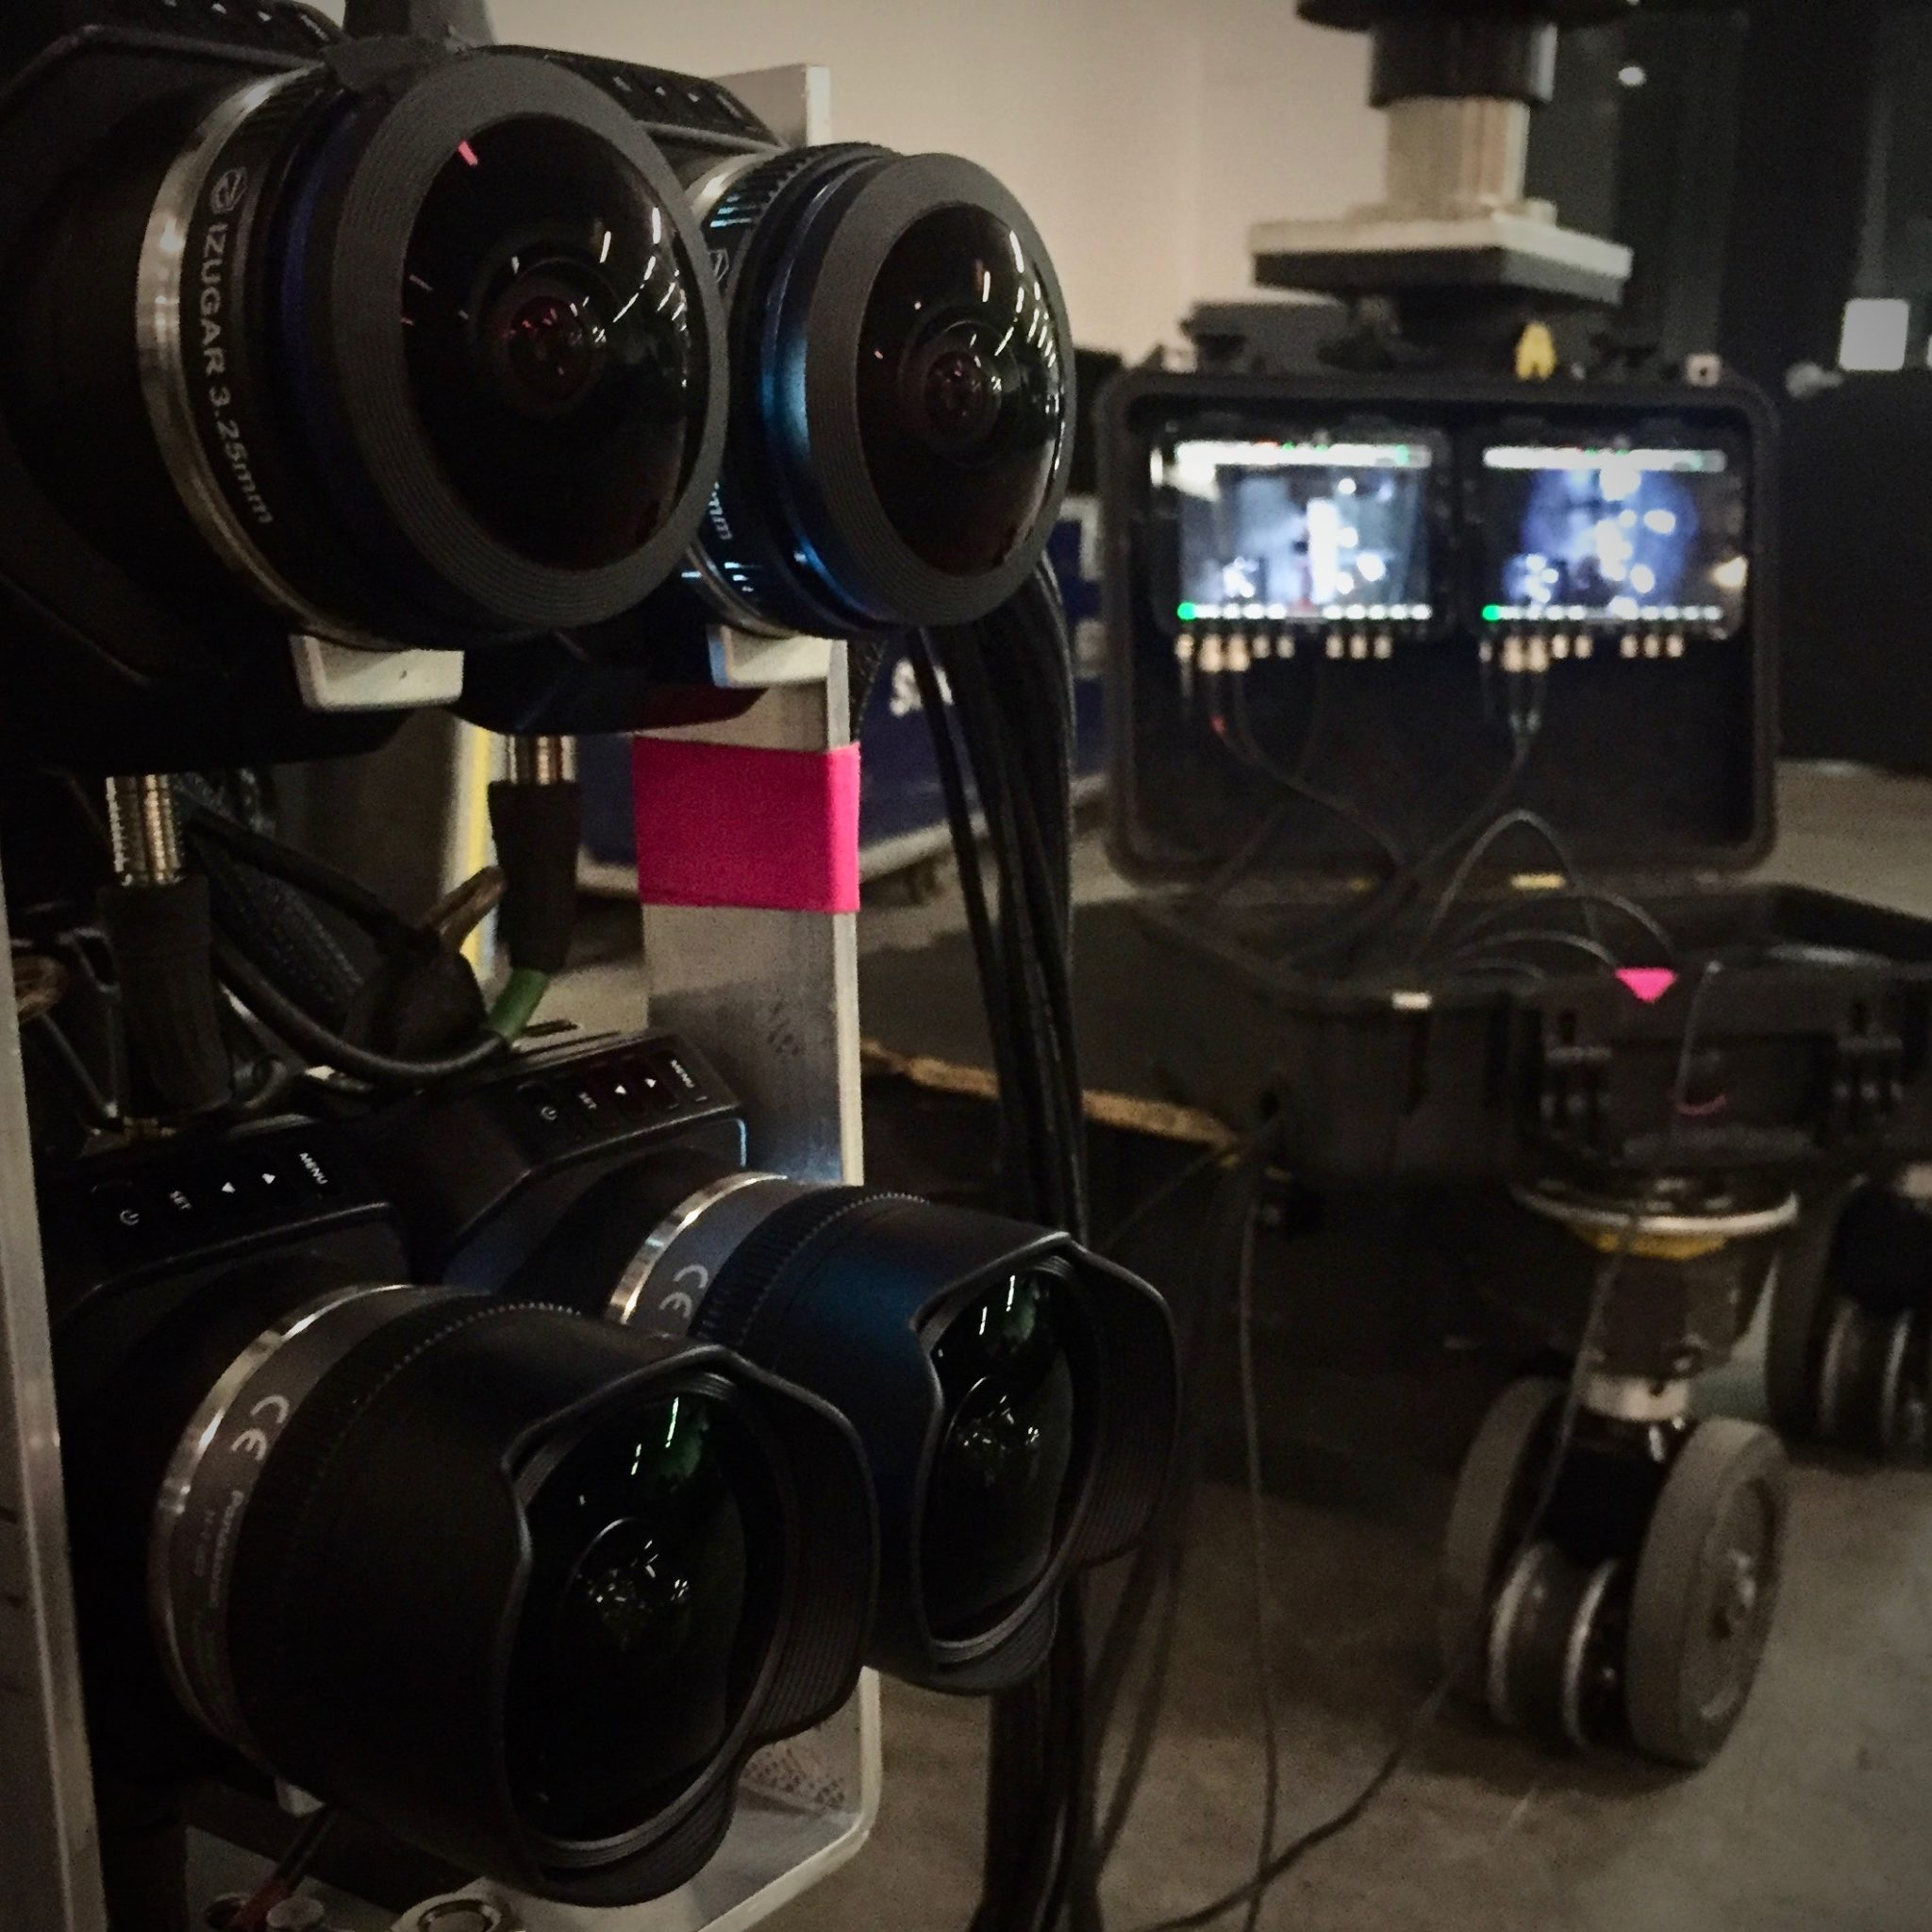 Stereoscopic cameras on set